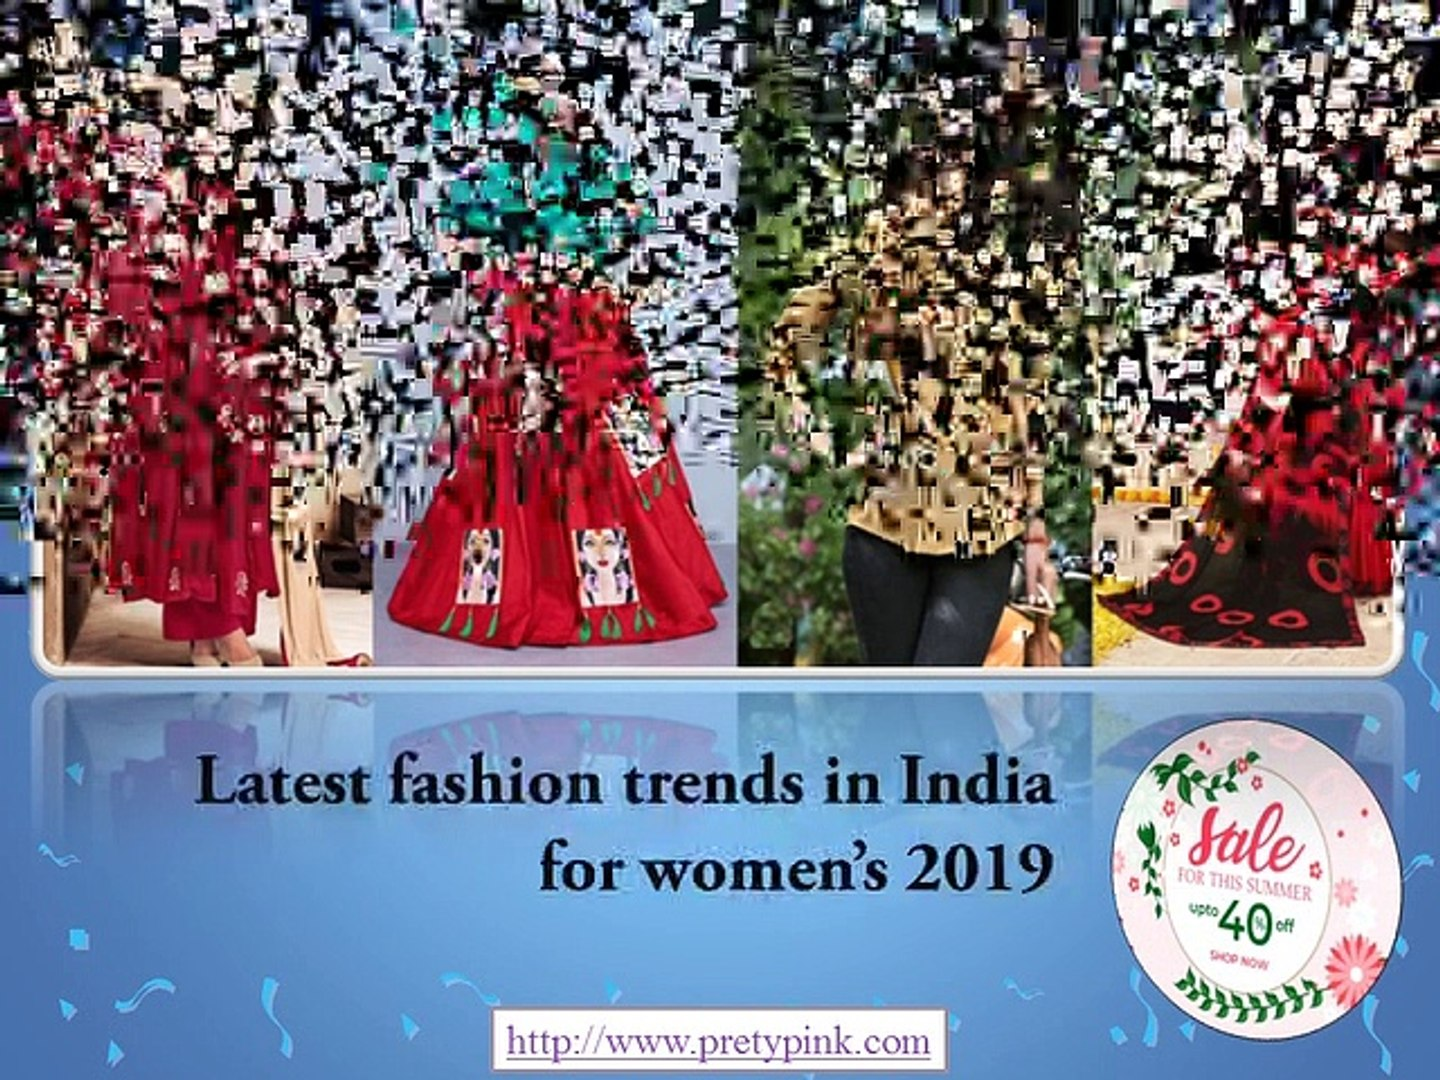 Latest fashion trends in India for women's 2019